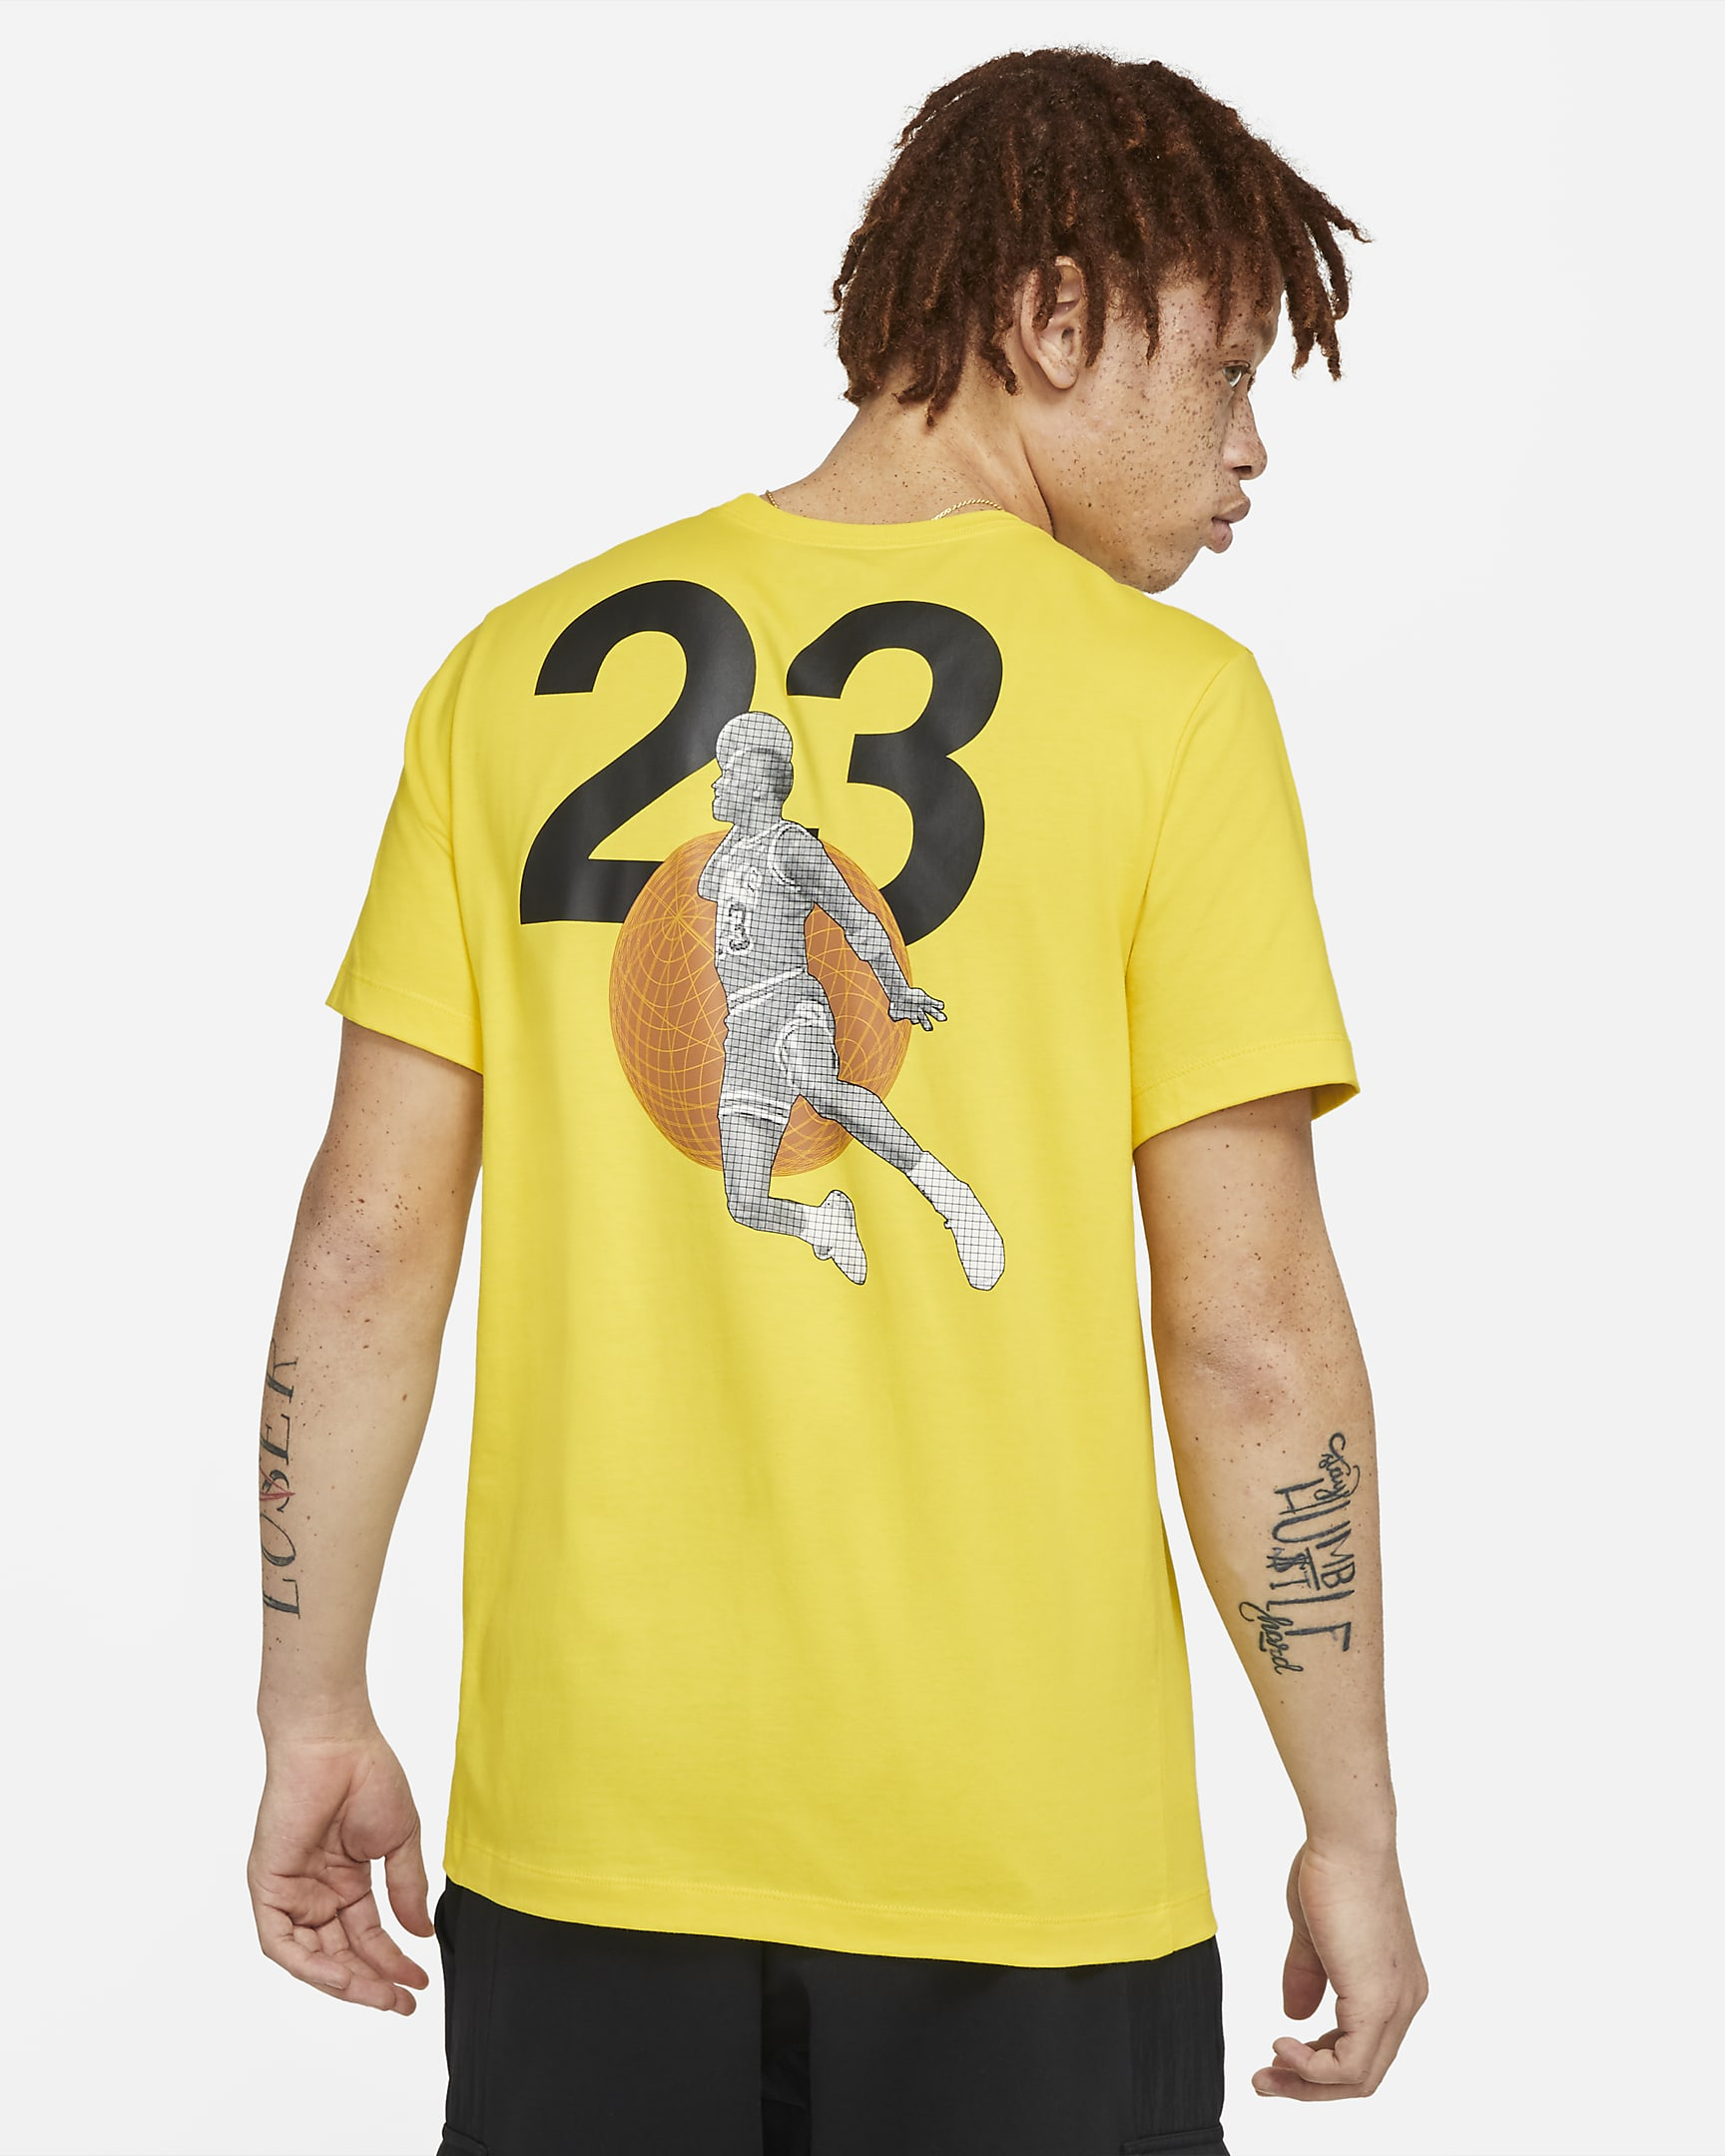 jordan-23-engineered-mens-short-sleeve-t-shirt-nHJnsd-1